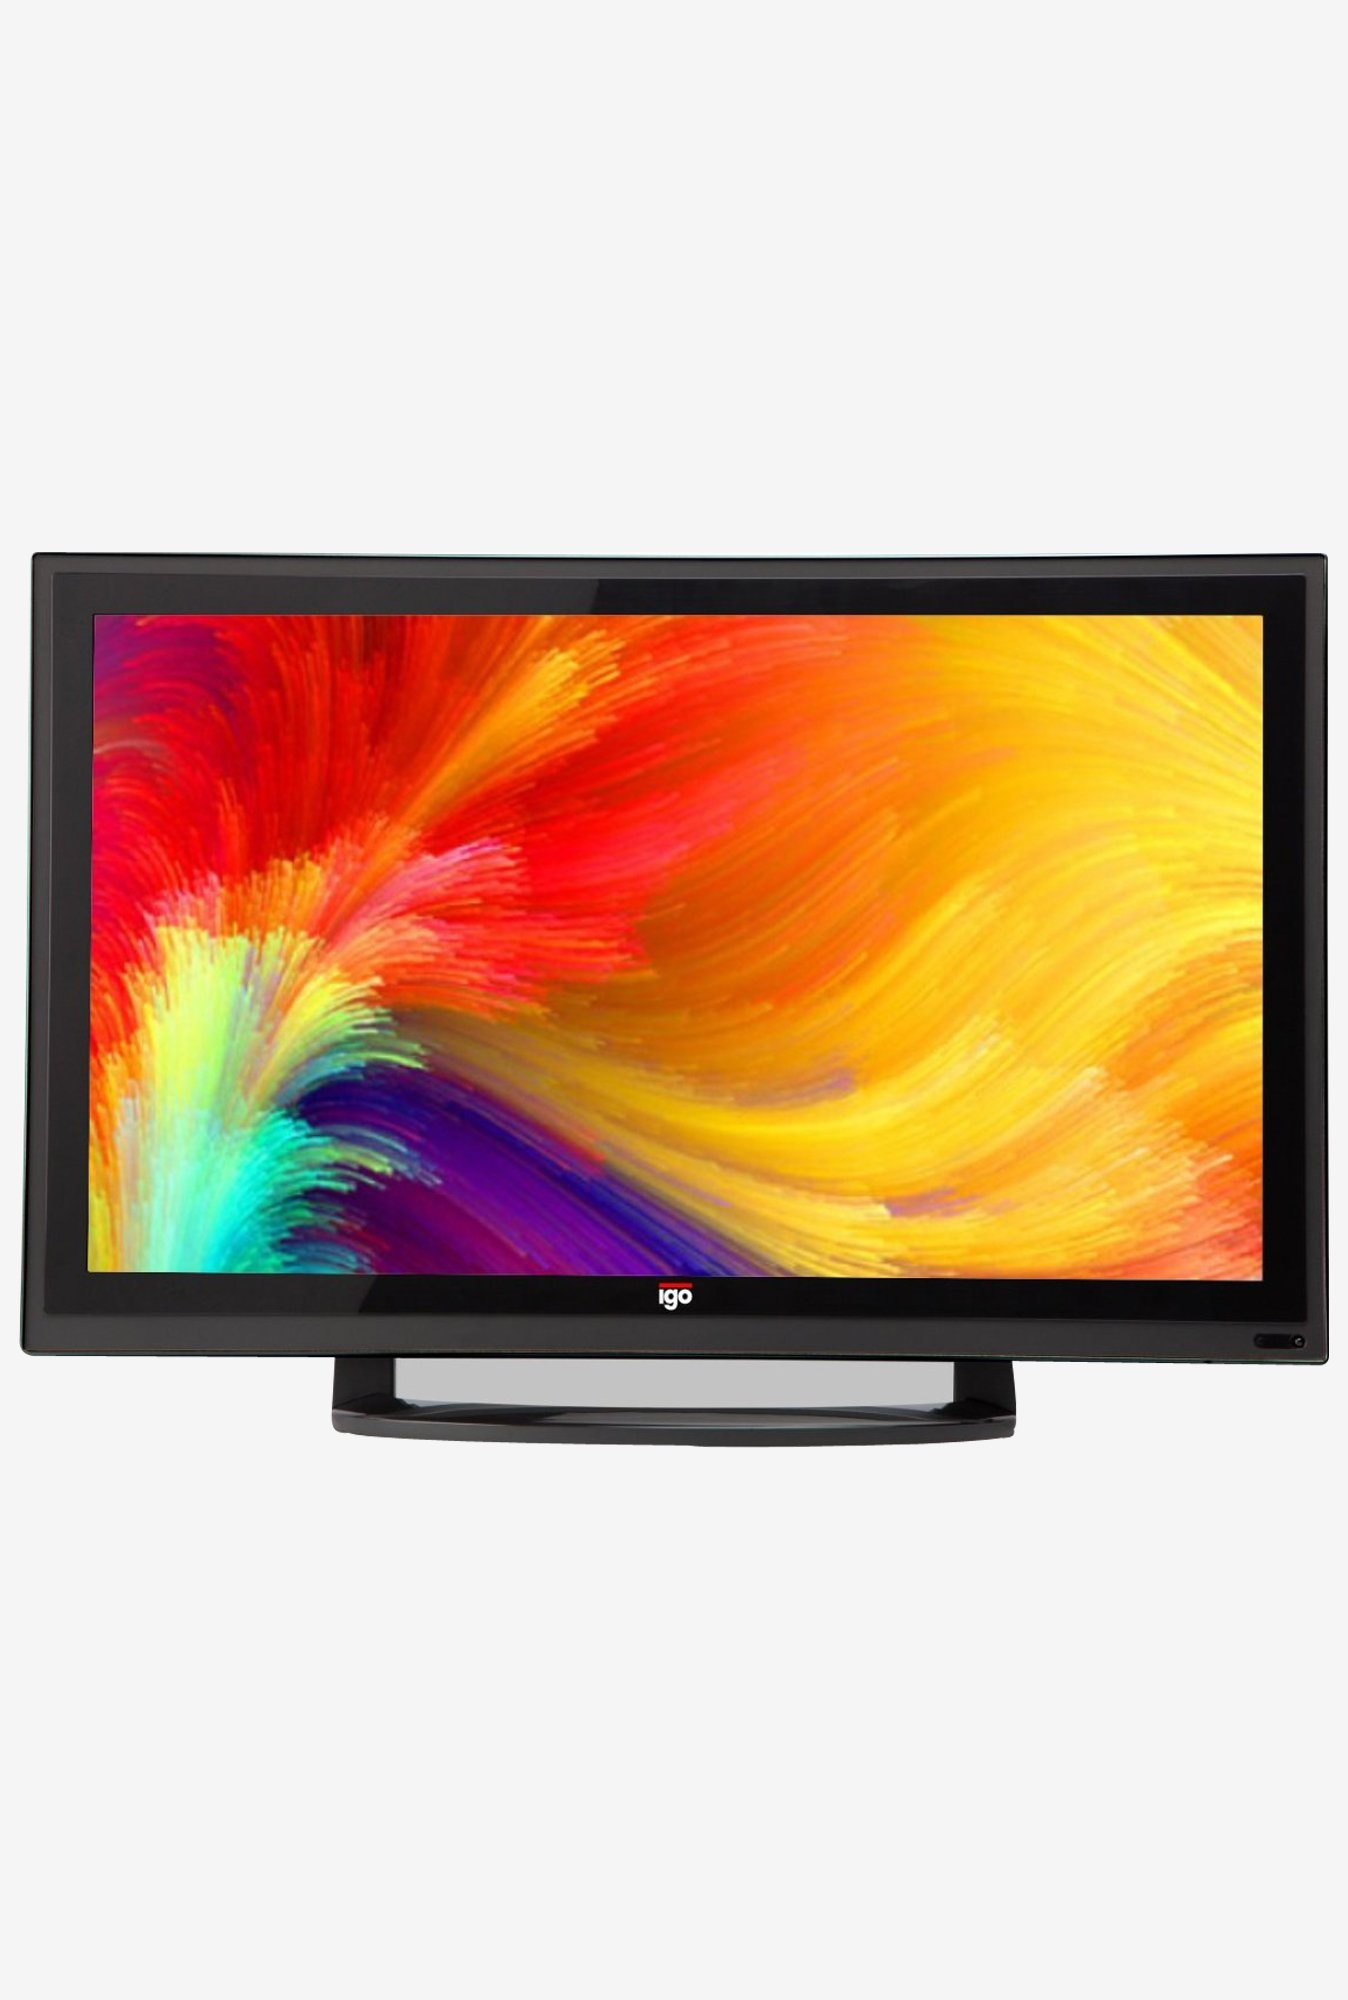 Igo LEI40FNBH1 40 inches Full HD LED TV (Black)